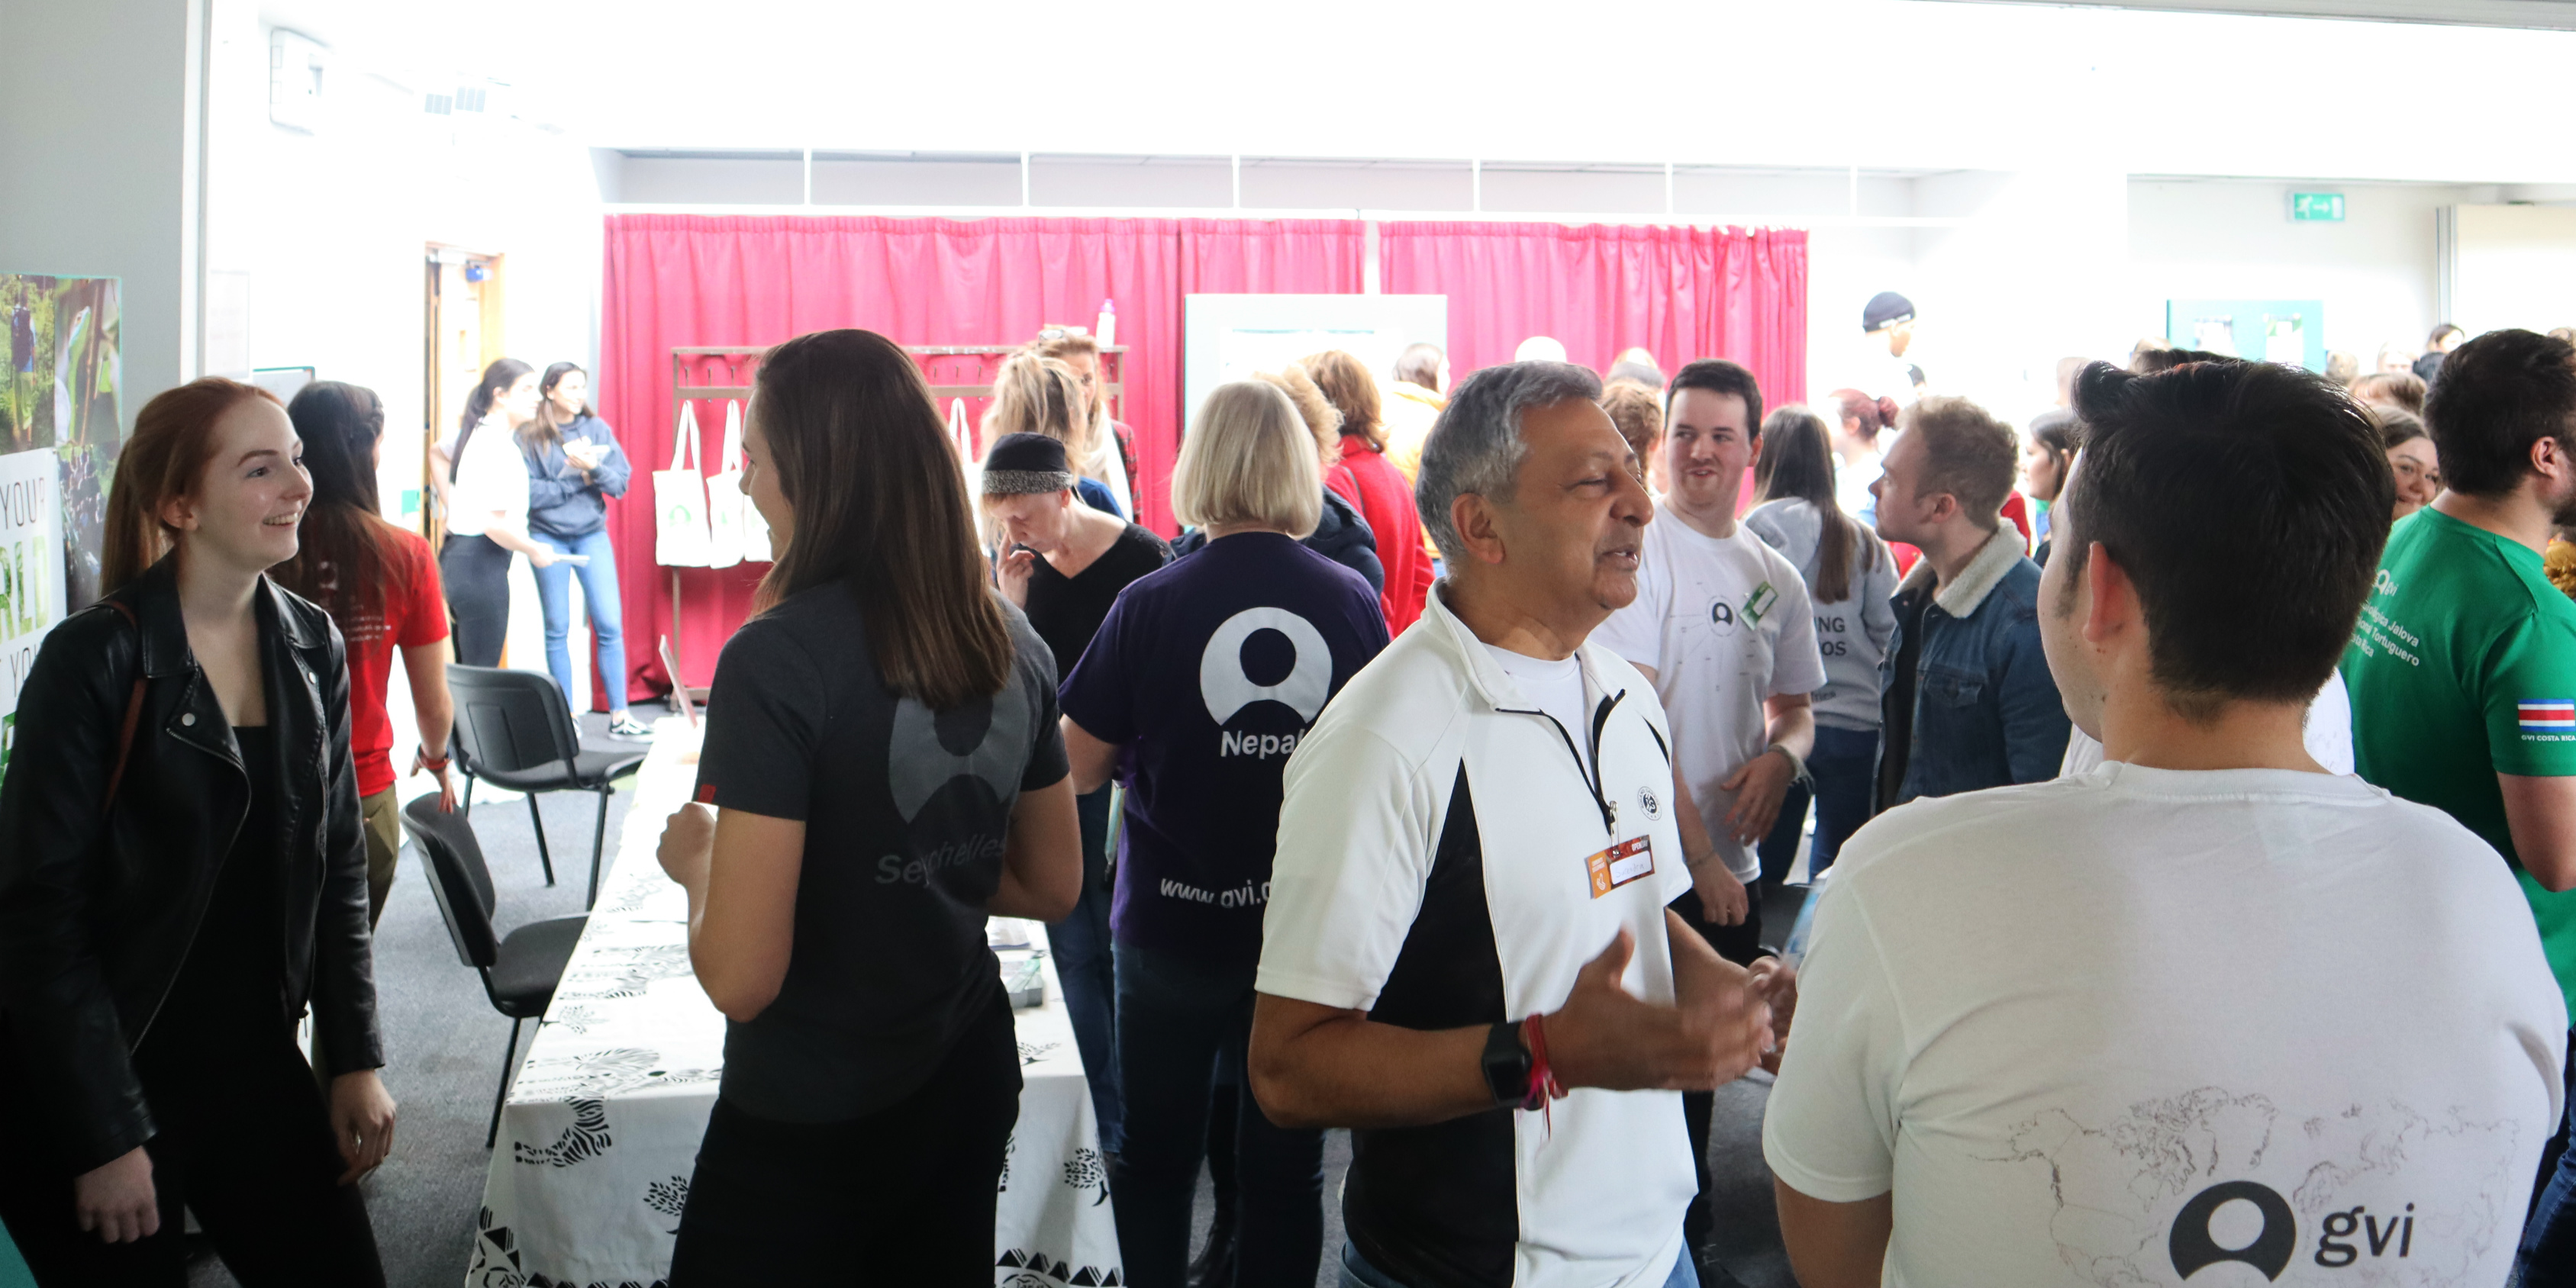 A crowd of volunteers and guests at the GVI open day in.